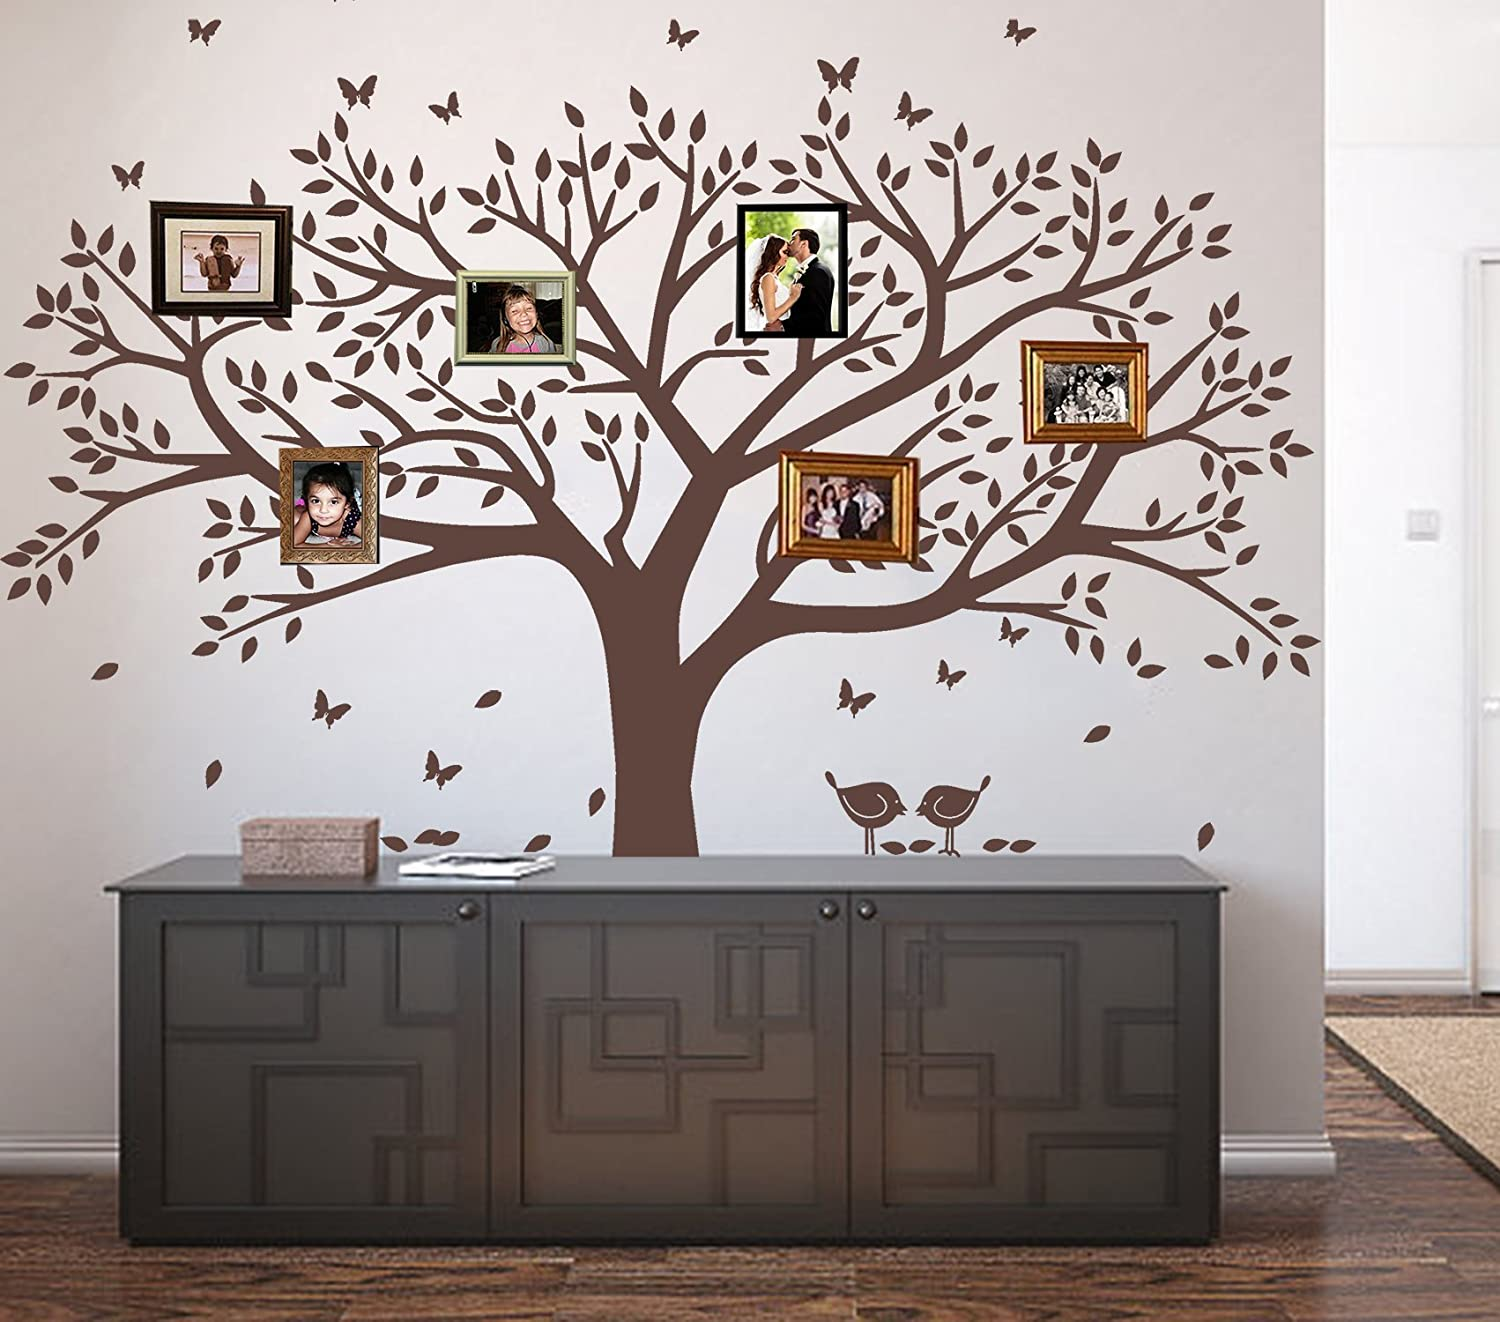 "LSKOO Family Photo Frame Tree Wall Decals Family Tree Decal Living Room Home Decor (108"" wide x 84"" tall) (Brown)"